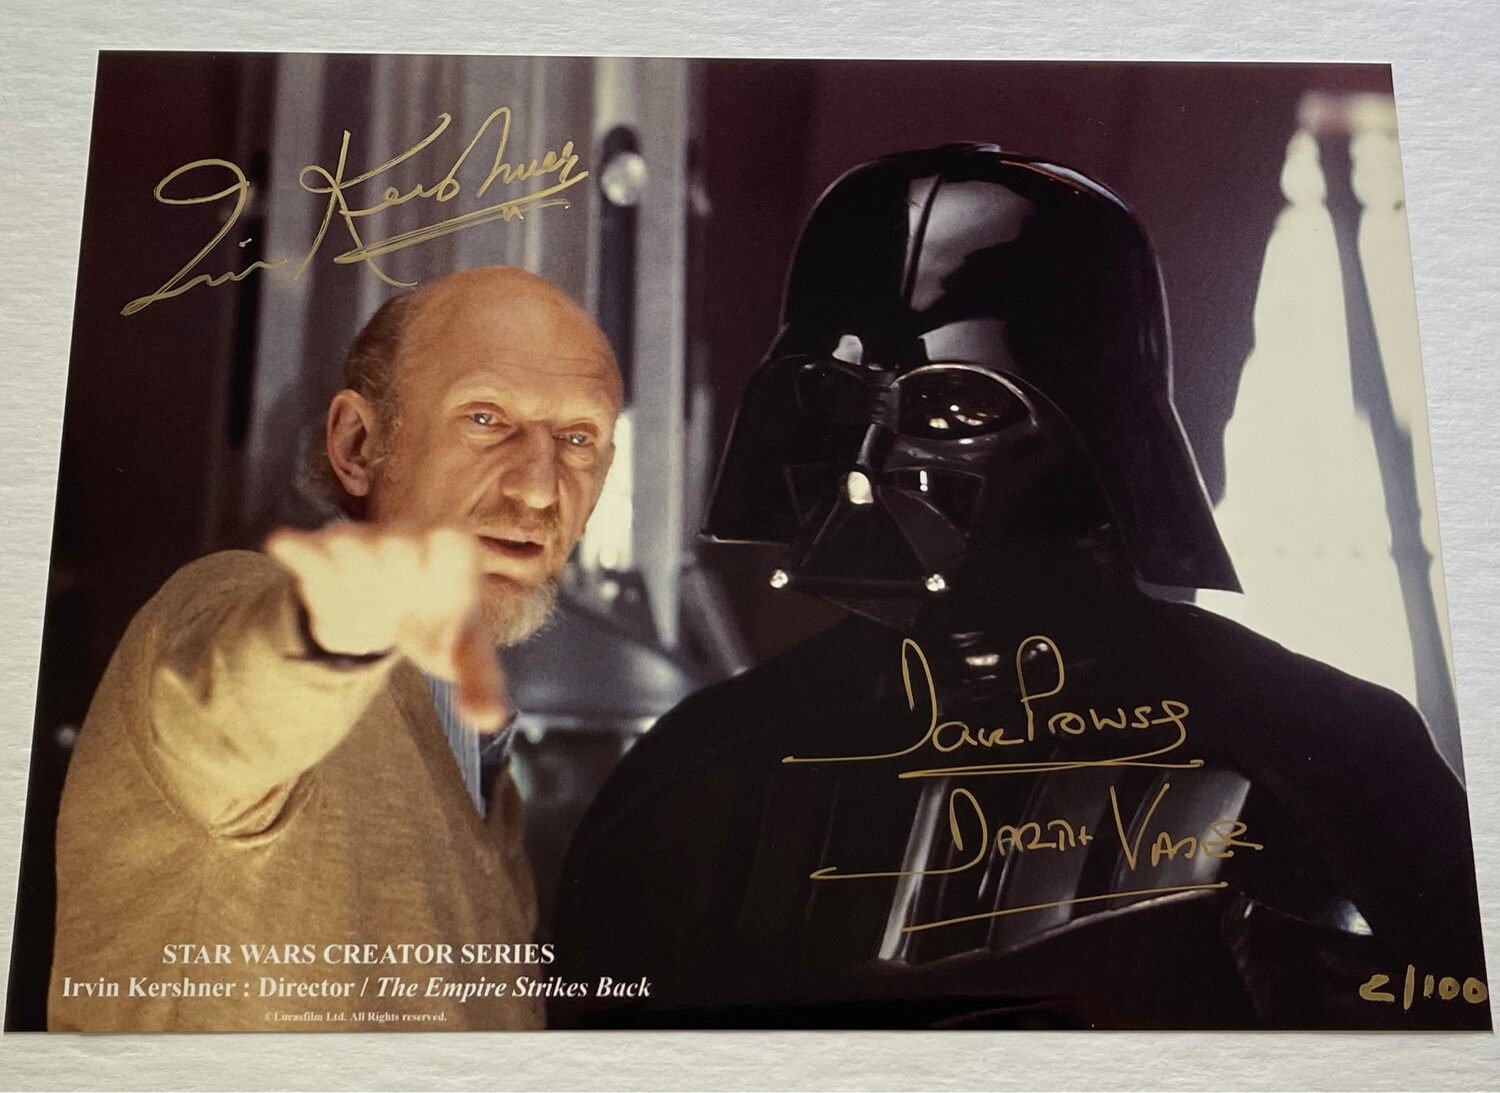 8X11 PHOTO SIGNED BY DAVE PROWSE AND IRVIN KERSHNER